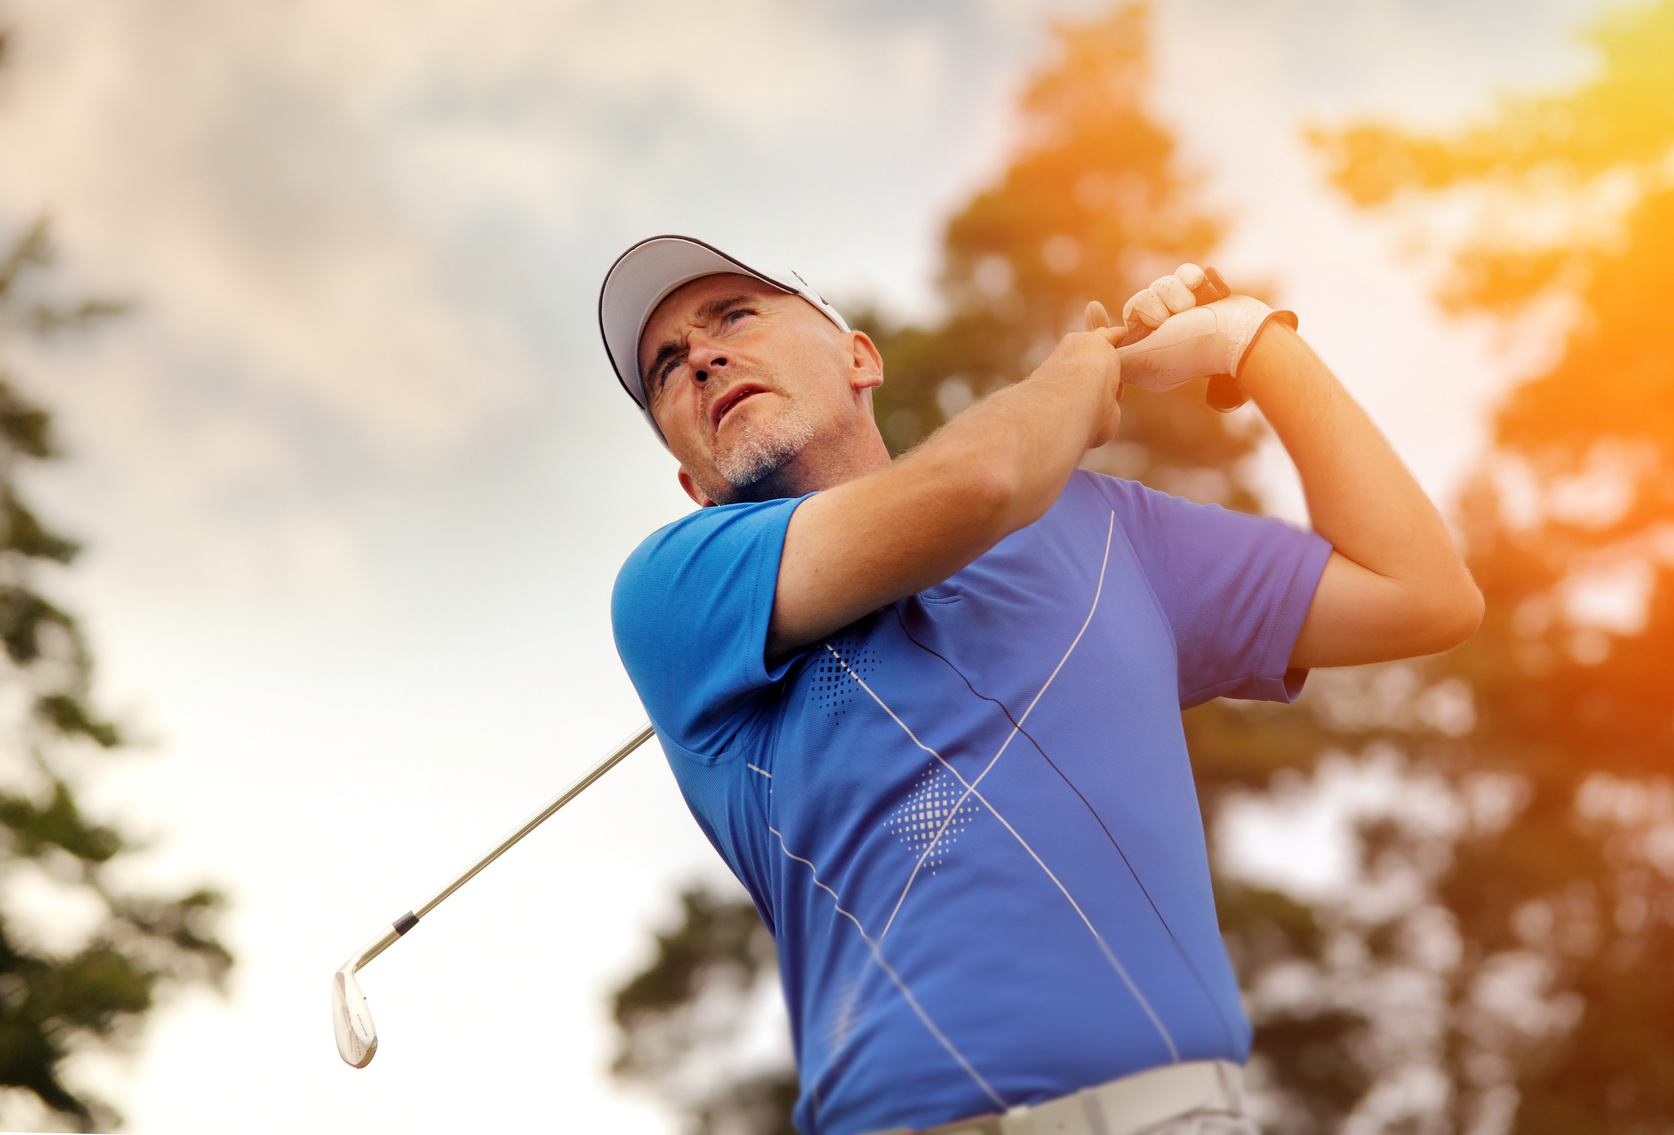 How to Improve Your Golf Swing at Home